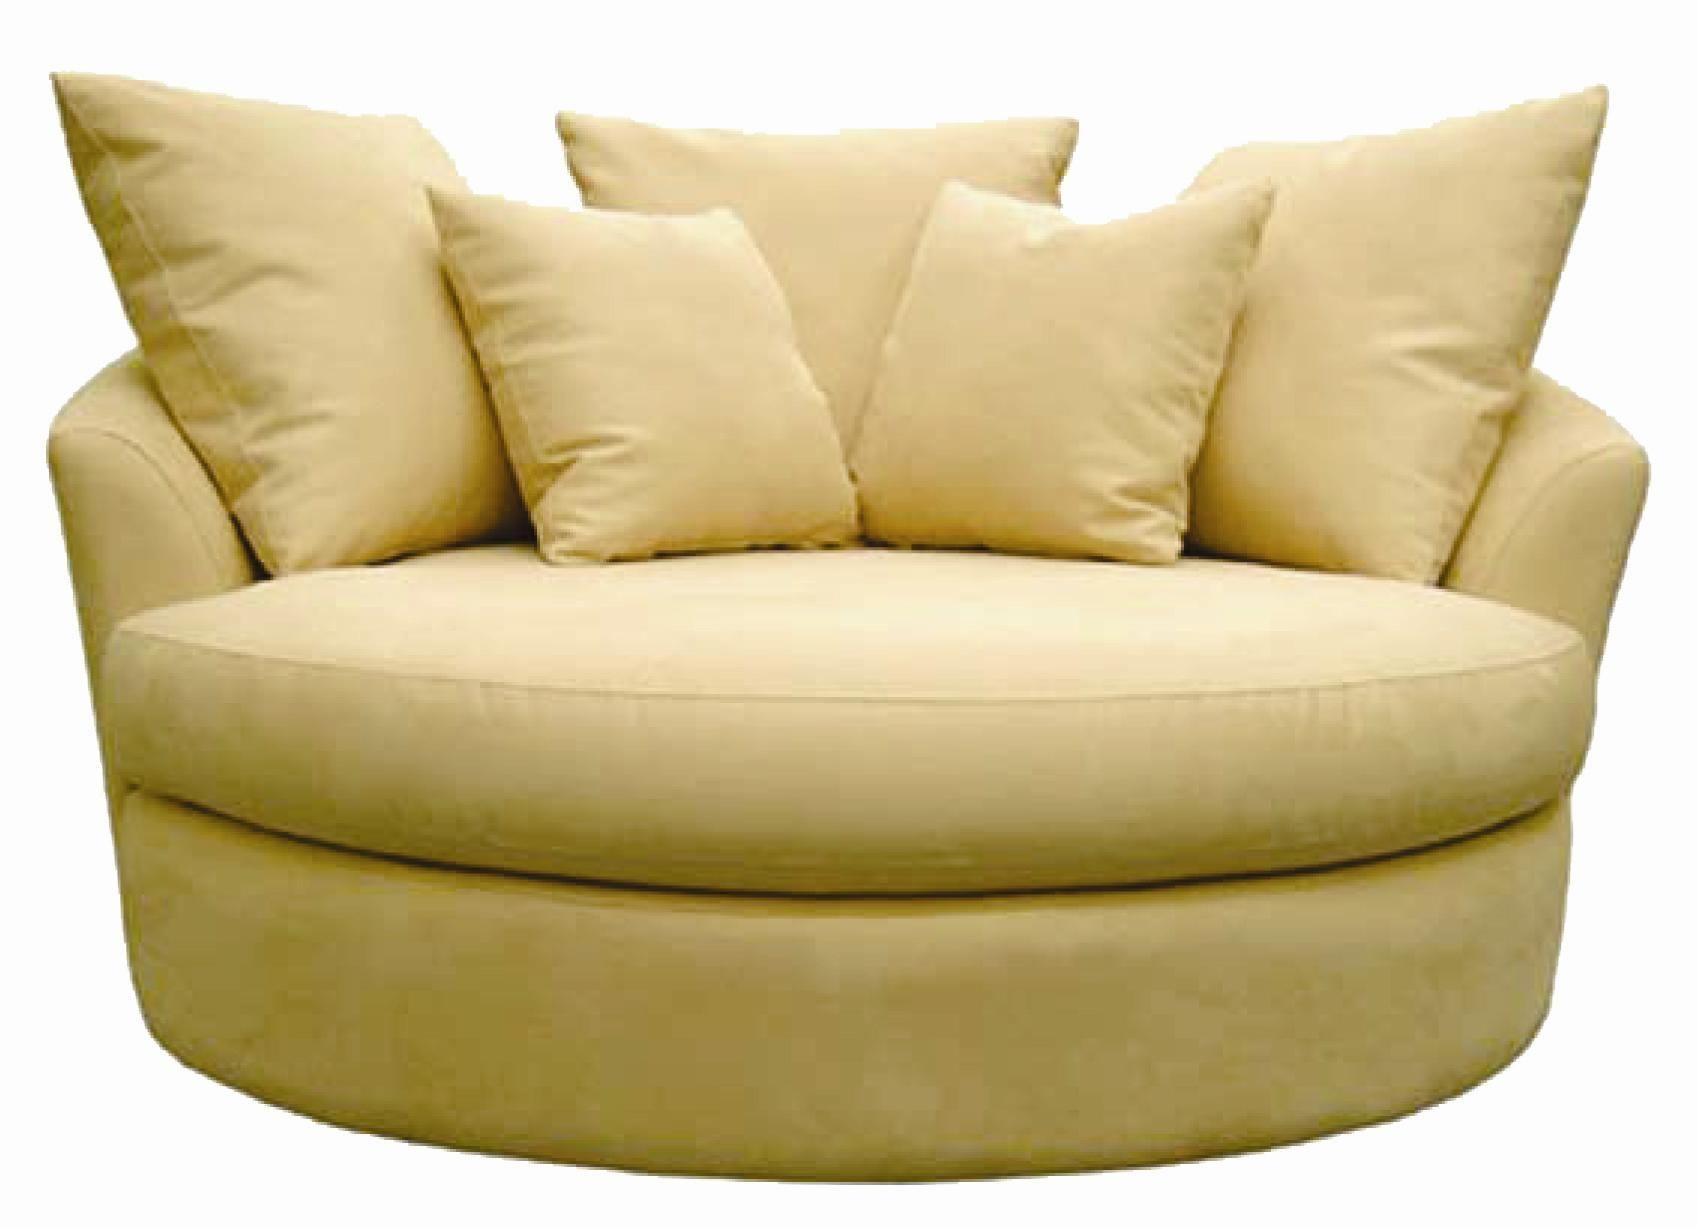 Oversized Cozy Chair 20 Top Cuddler Swivel Sofa Chairs Sofa Ideas